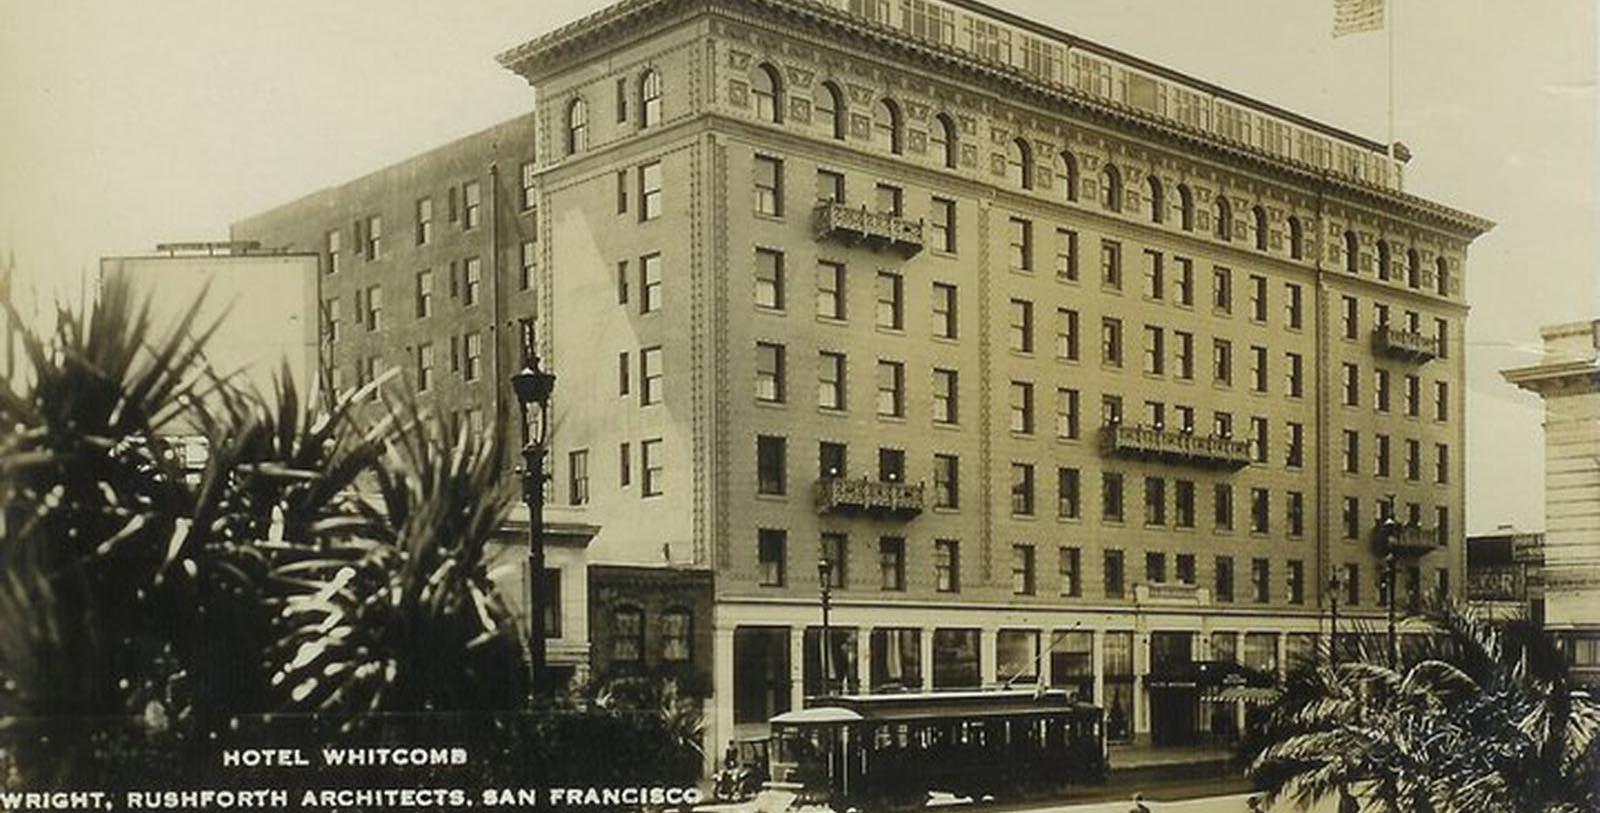 Image of Historic Exterior, Hotel Whitcomb in San Francisco, California, 1916, Member of Historic Hotels of America, Discover